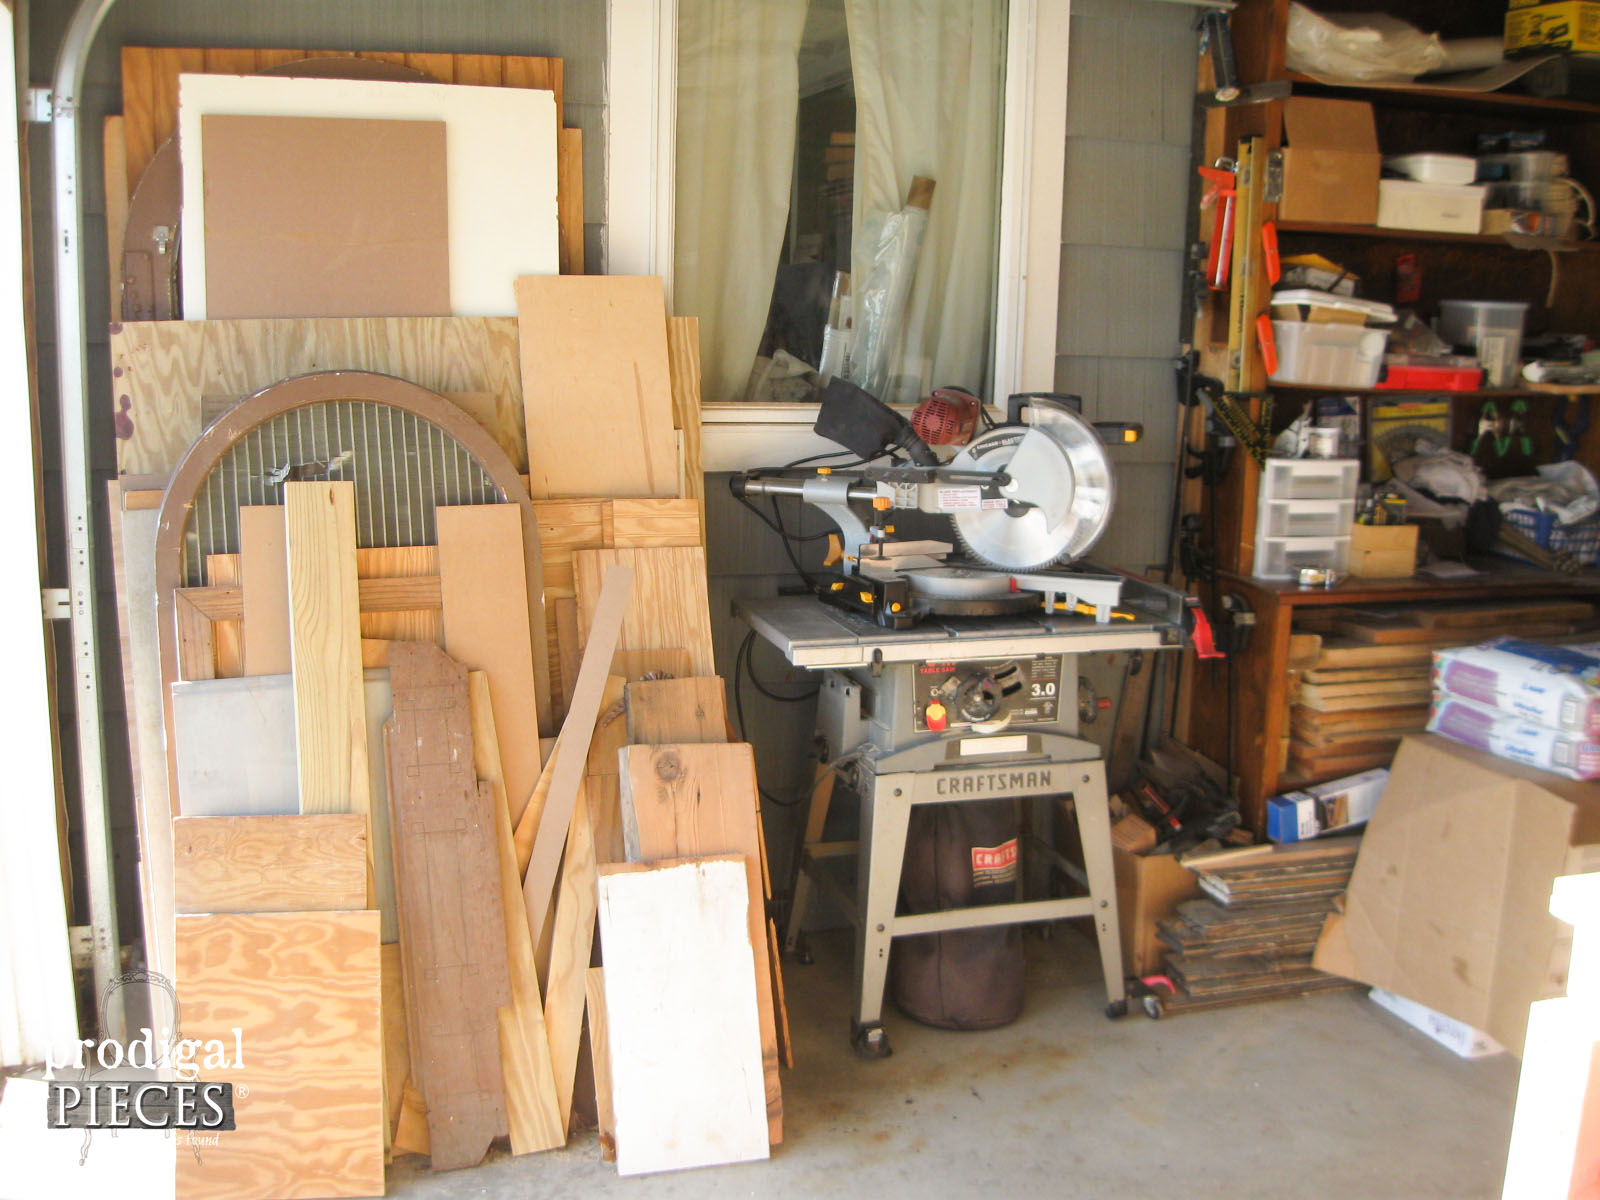 DIY Workshop with Compound Miter Saw by Prodigal Pieces | www.prodigalpieces.com